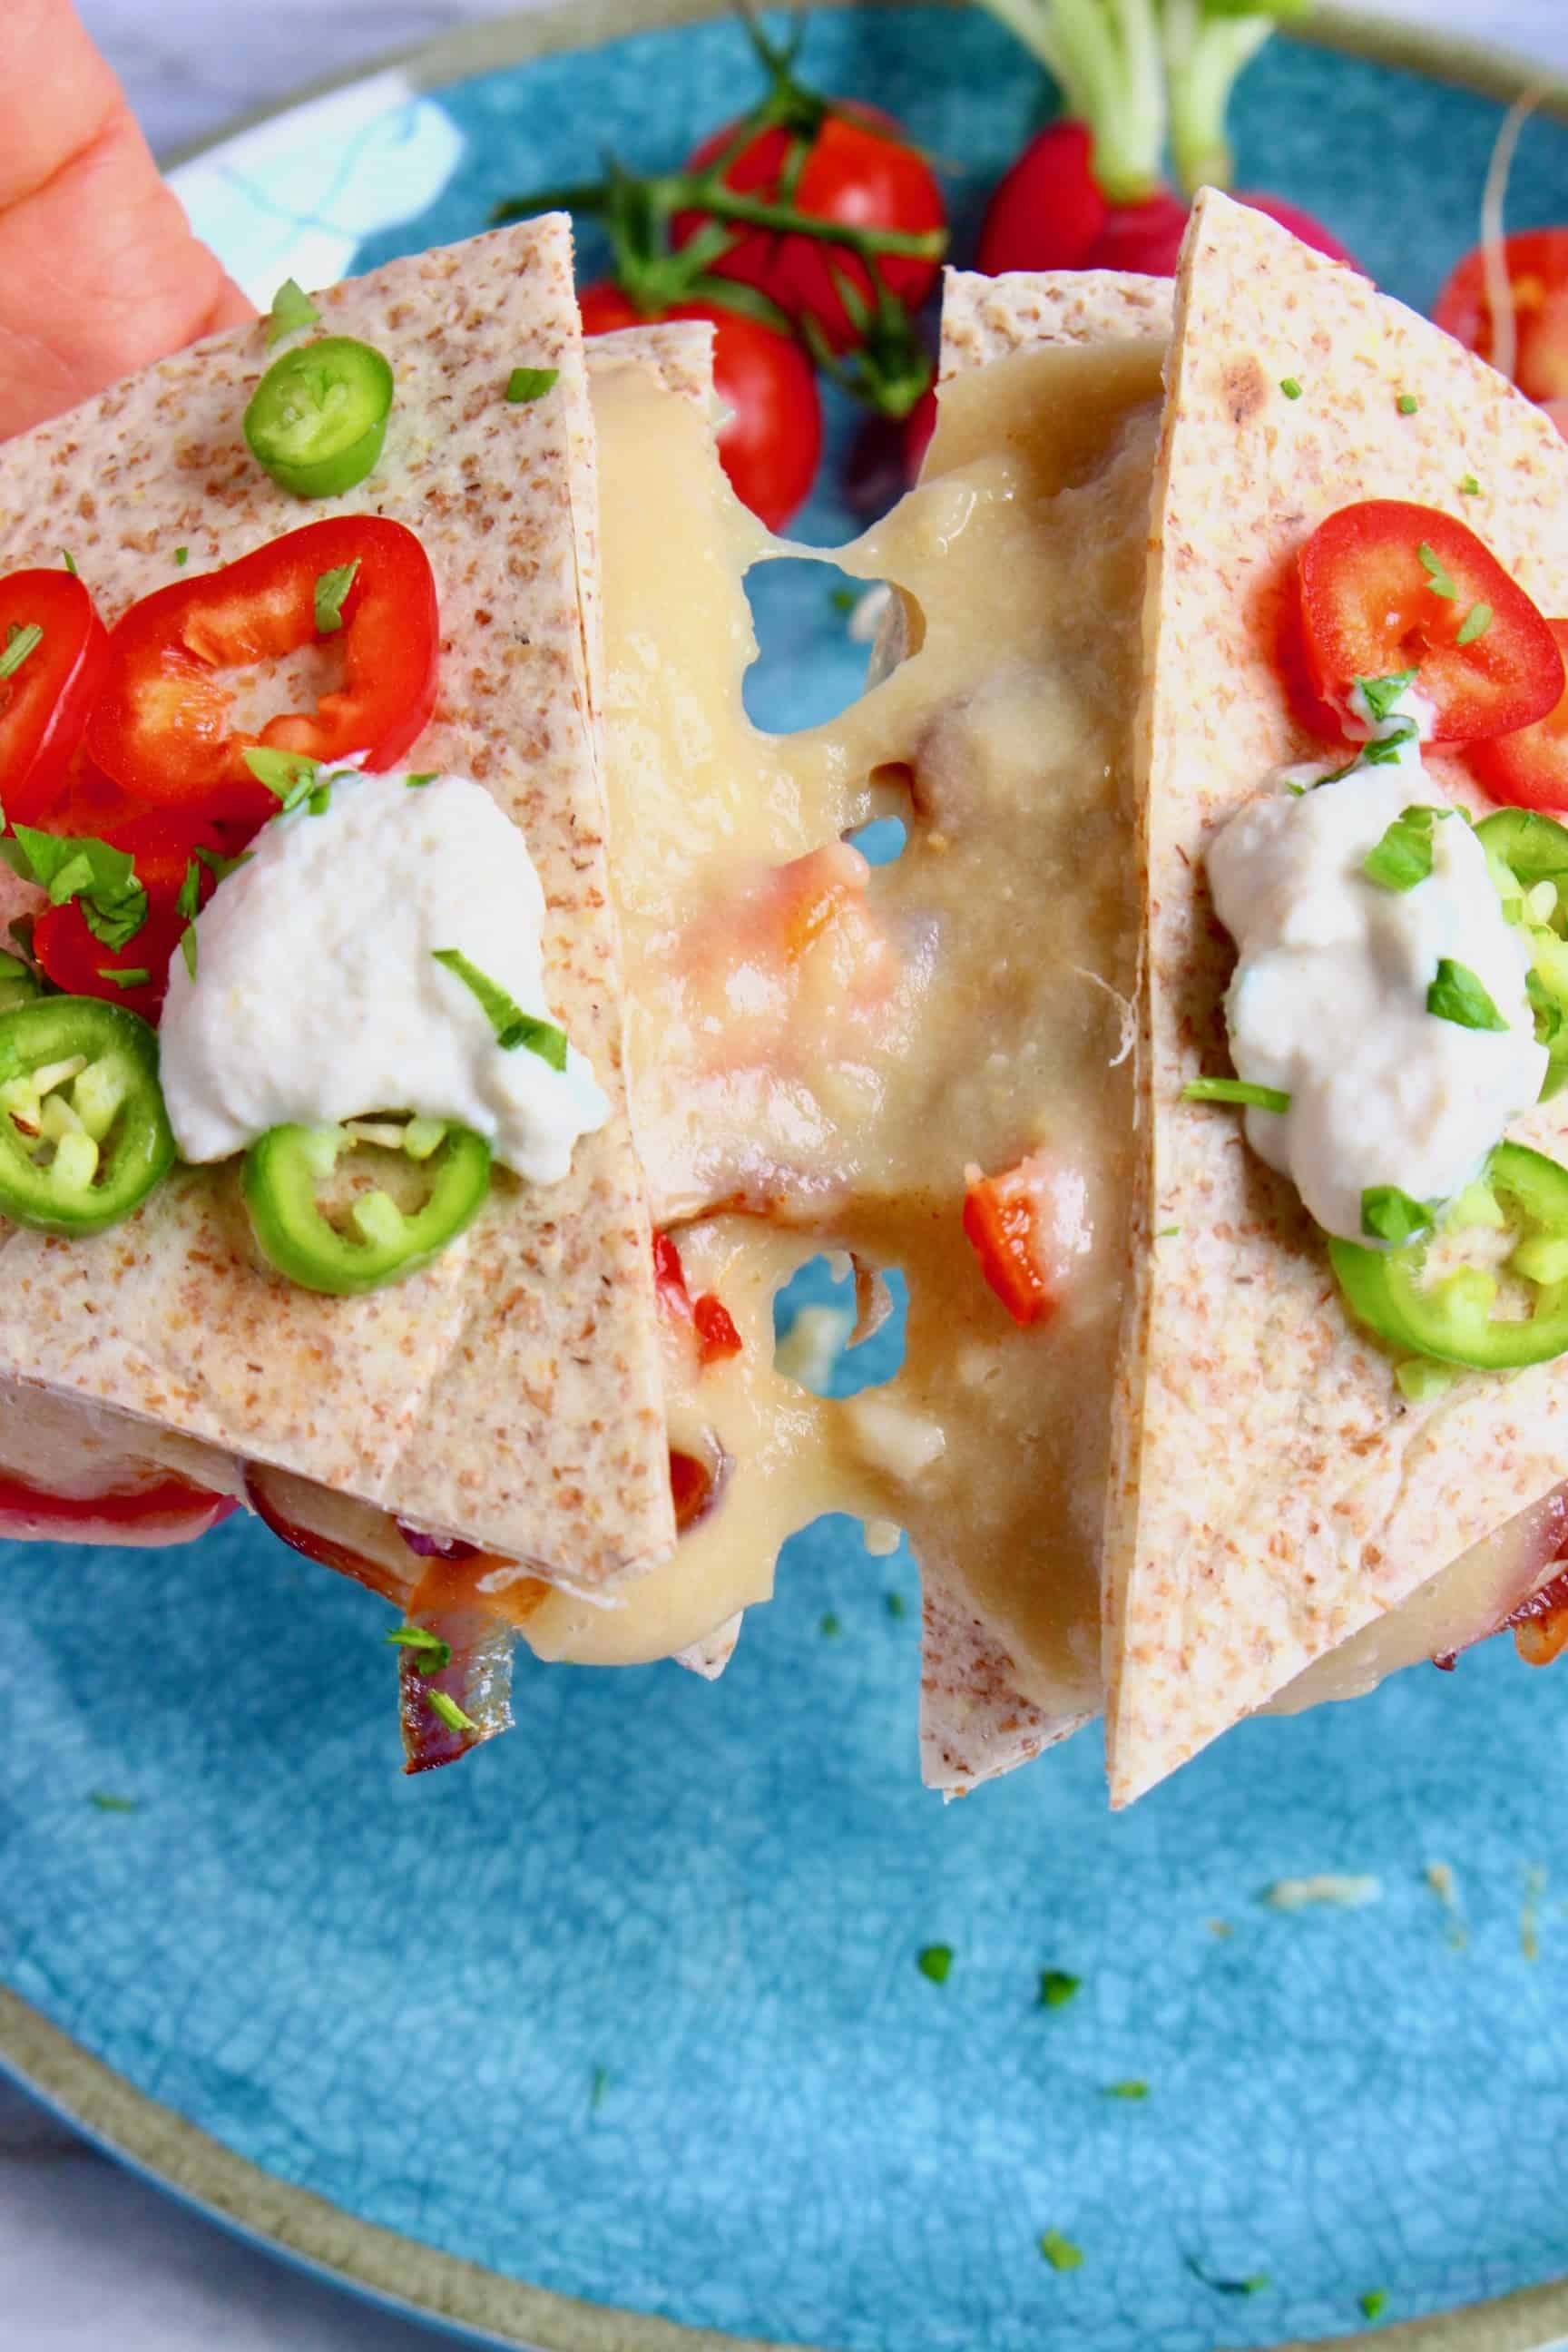 A quesadilla with cheese and vegetables being held up against a blue plate